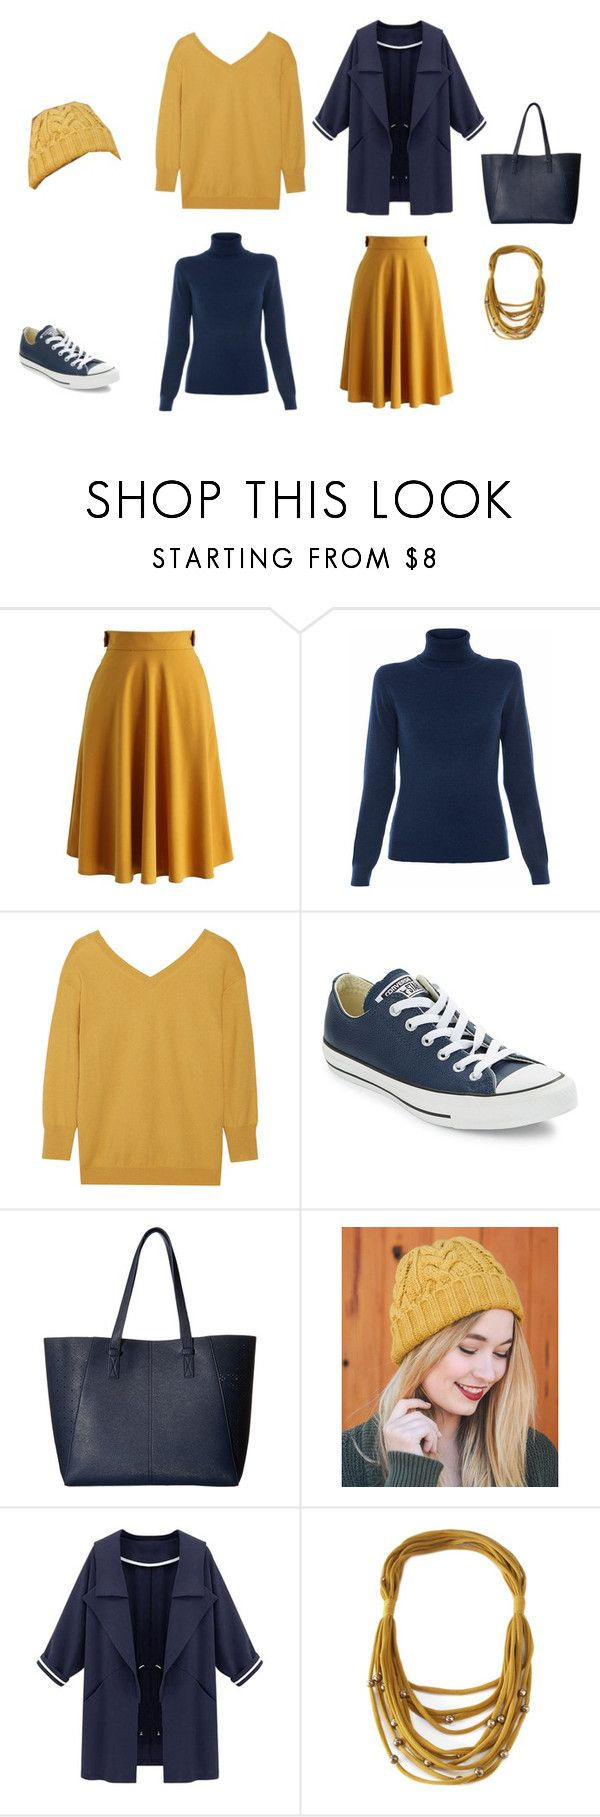 """Fall Color Palette, Skirt Edition: navy blue and mustard yellow"" by yanimal ❤ liked on Polyvore featuring Chicwish, Repeat, Étoile Isabel Marant, Converse, Gabriella Rocha and Leto"